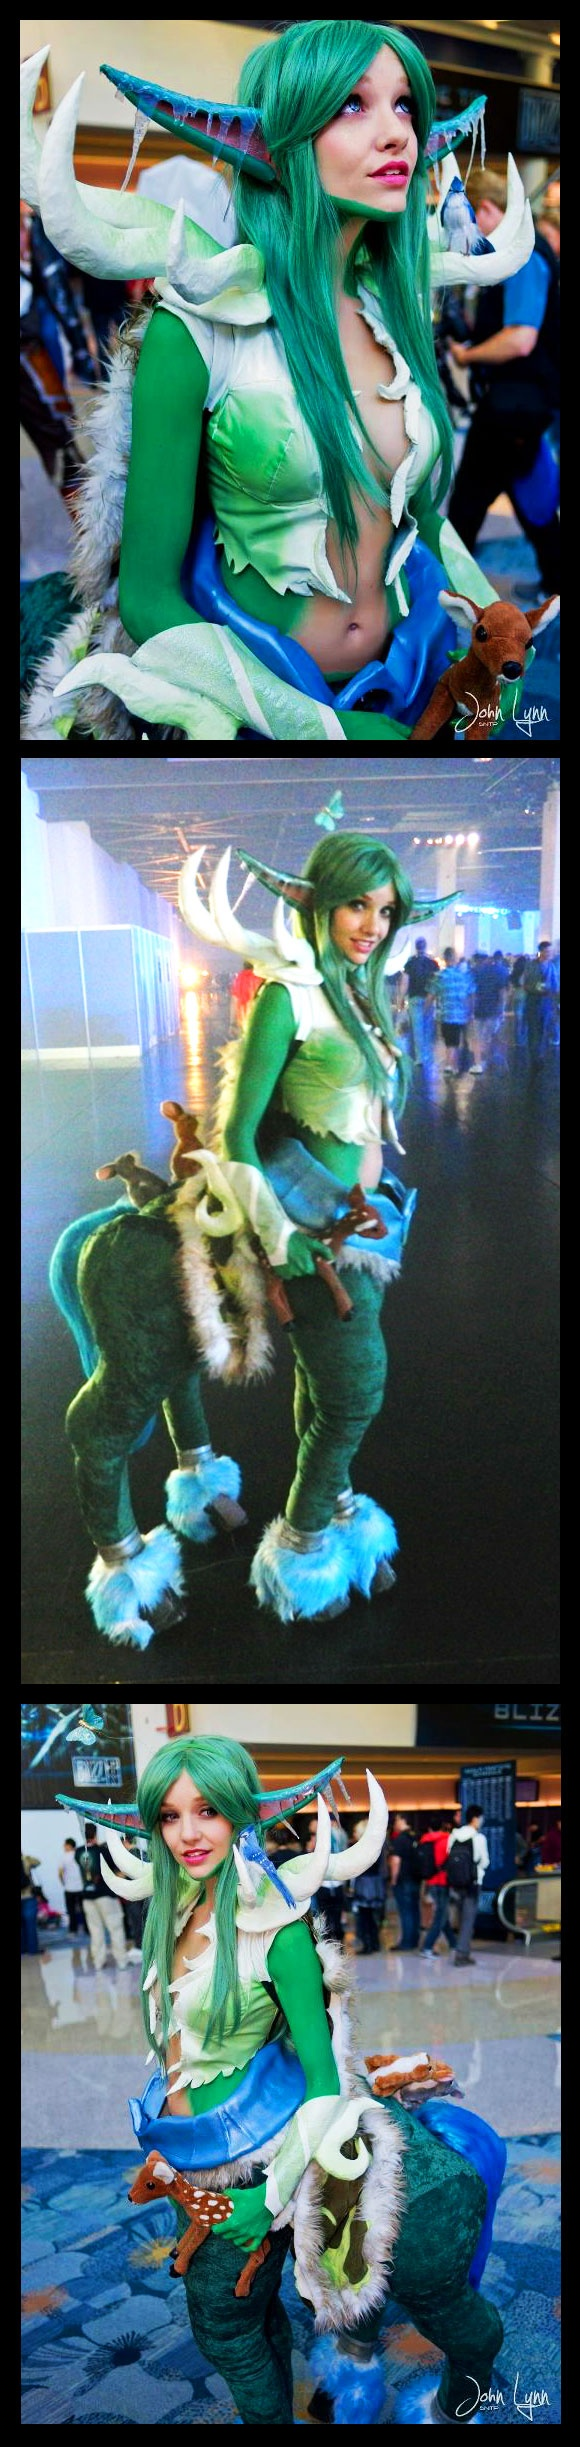 Lyz Brickley won 4th Place @ 2011 BlizzCon for this Mylune cosplay, World of Warcraft!